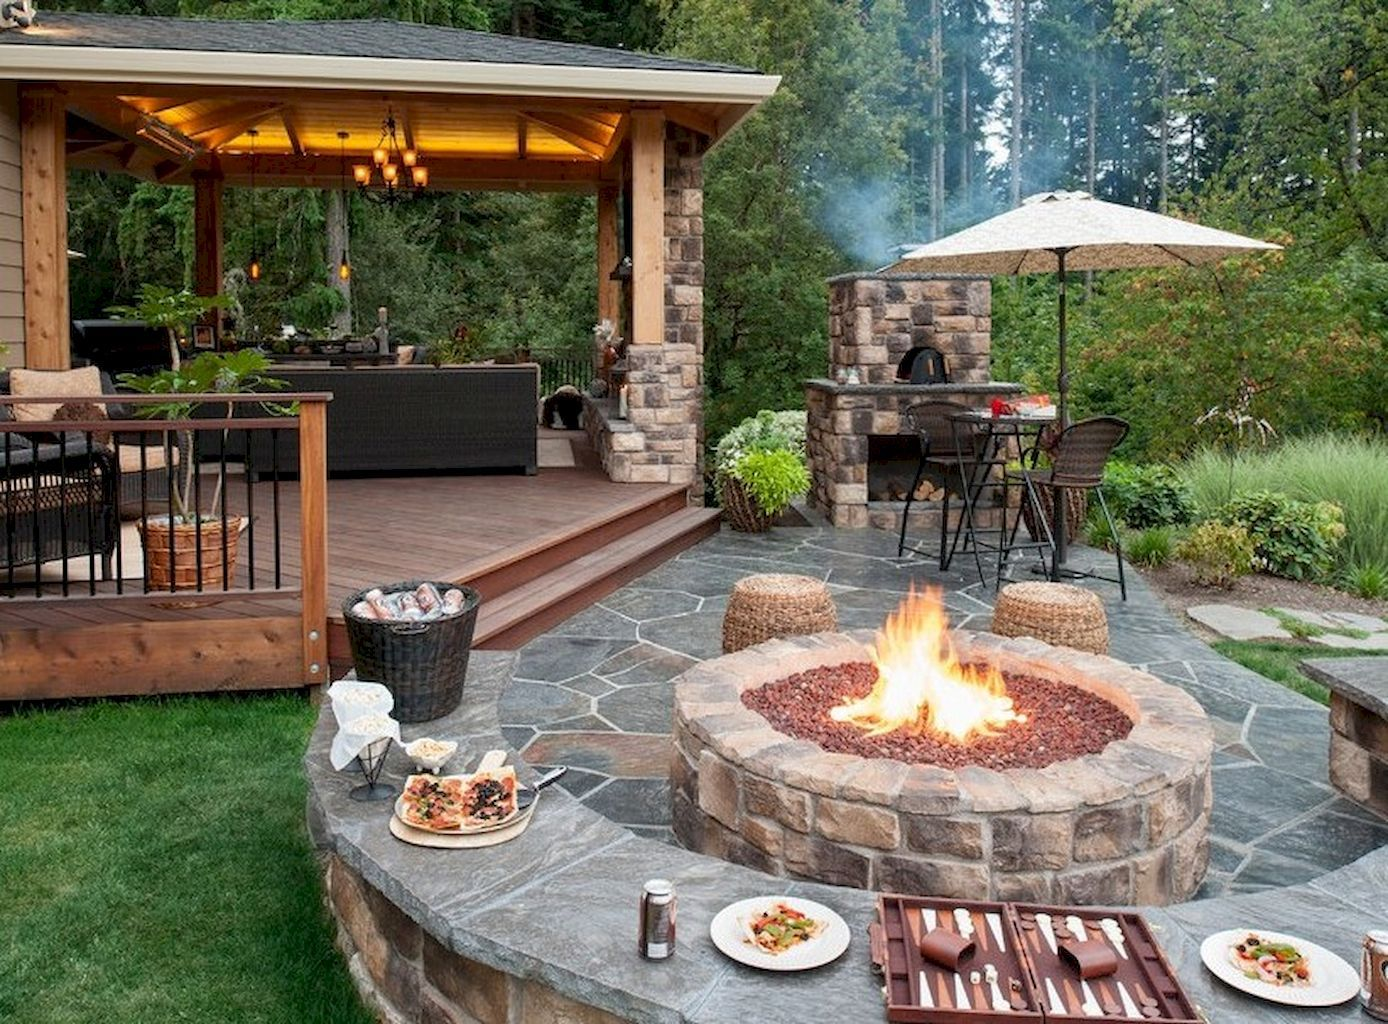 80 Diy Fire Pit Ideas And Backyard Seating Area Backyard Seating